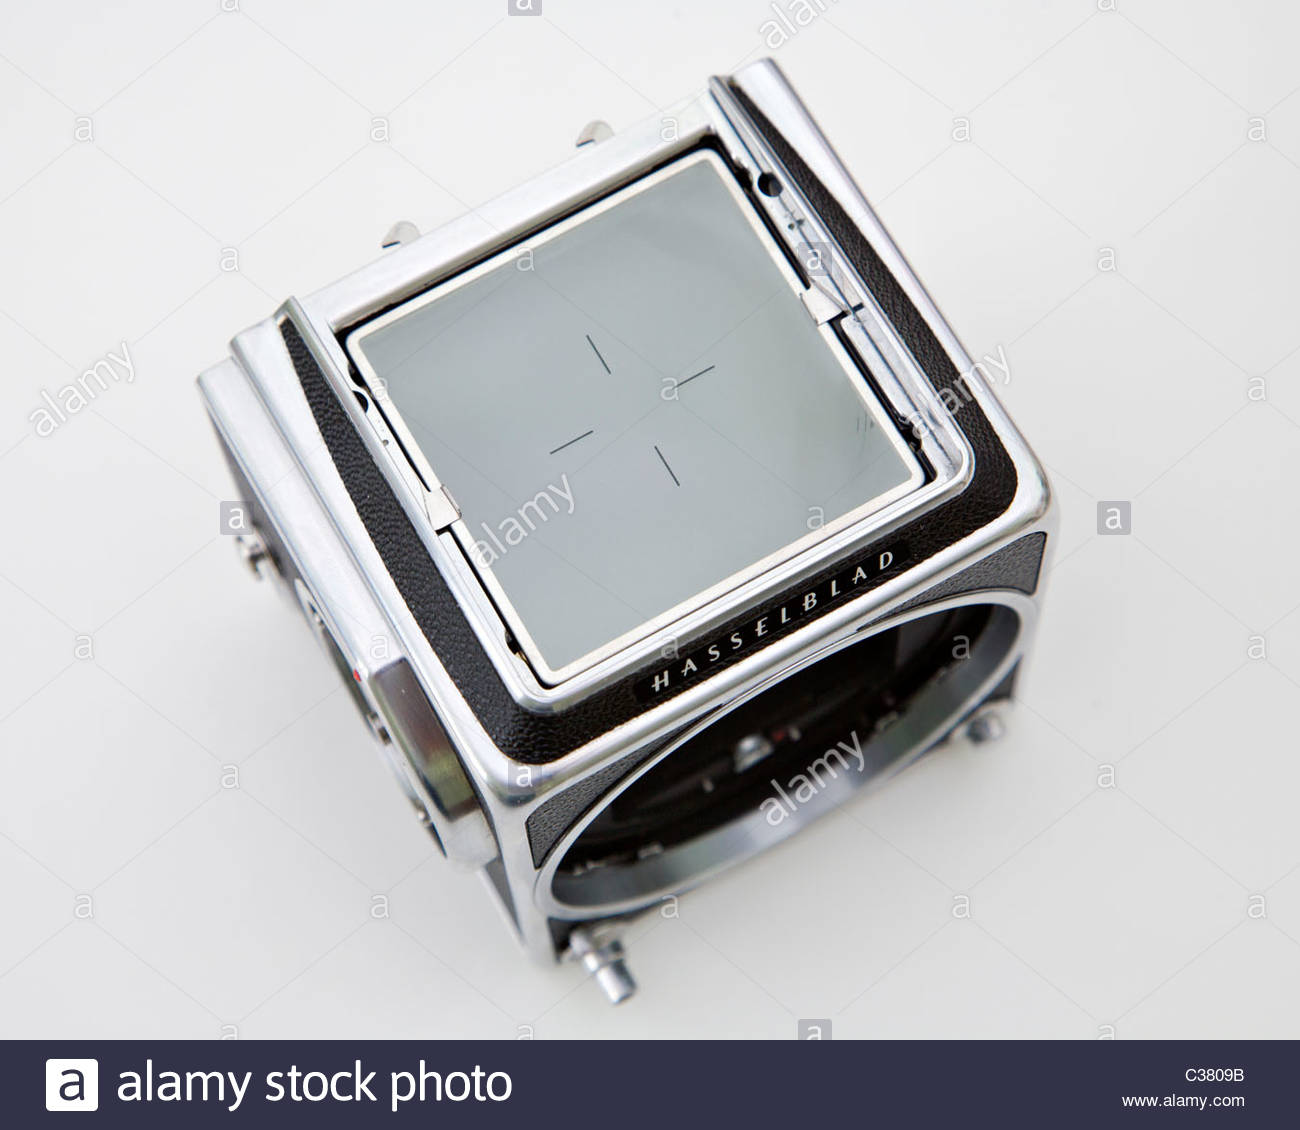 Focusing Screen from a Hasselblad 500cm medium format camera with lens and film back removed. - Stock Image